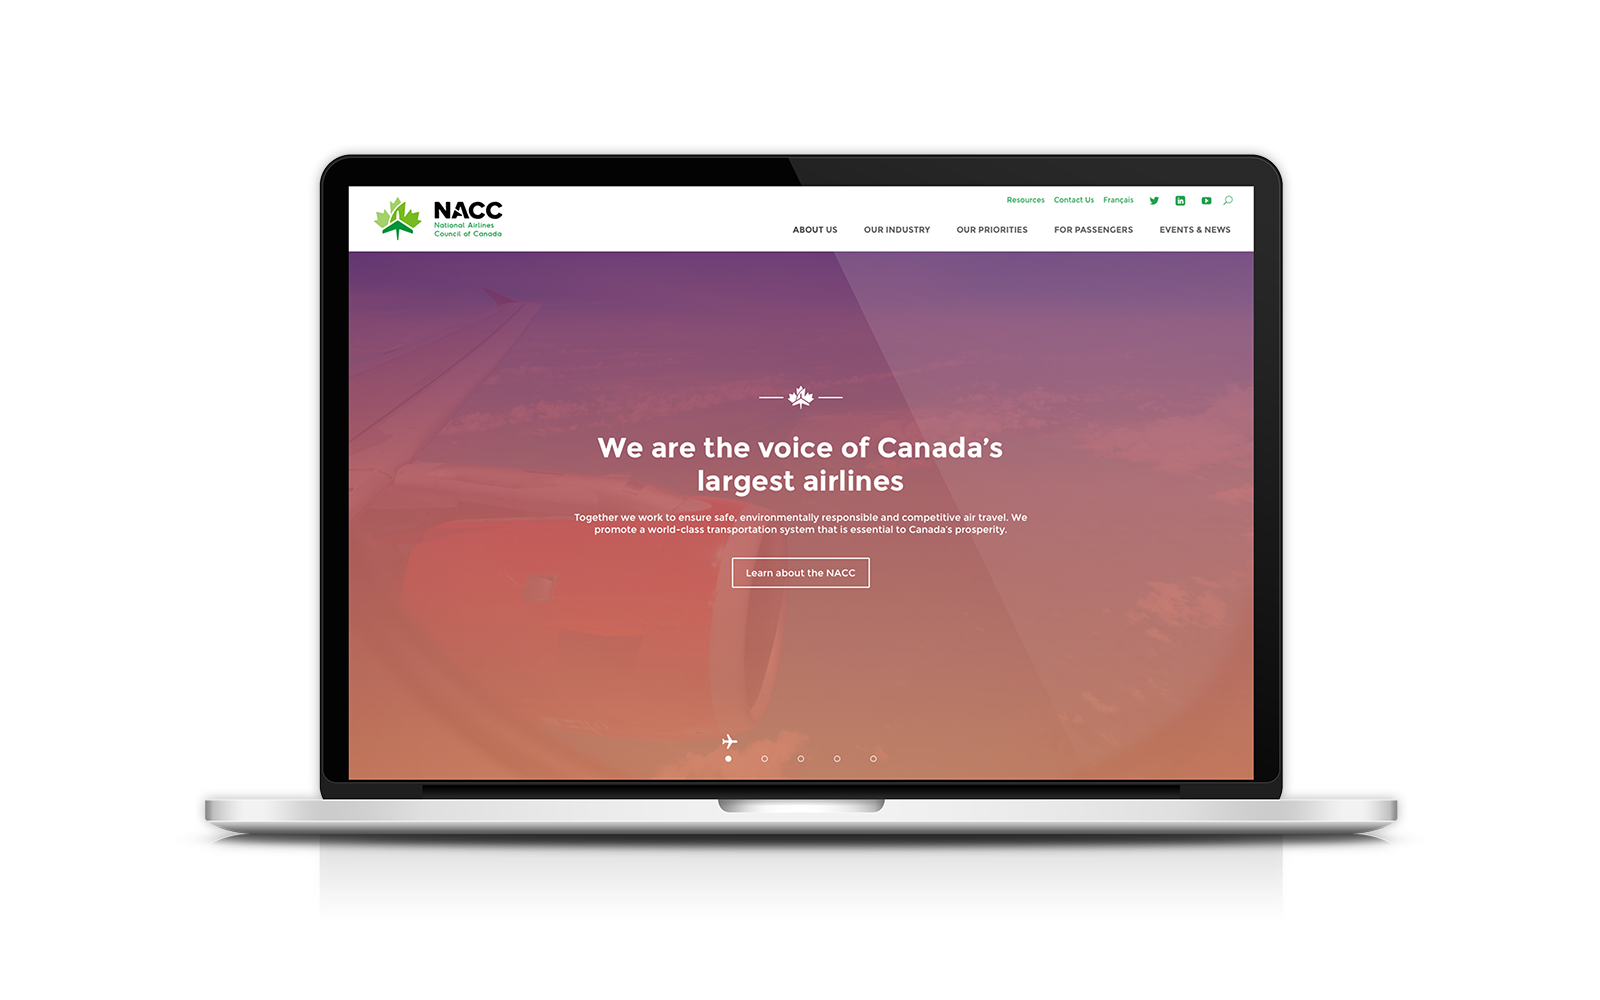 National Airlines Council of Canada - Website Design